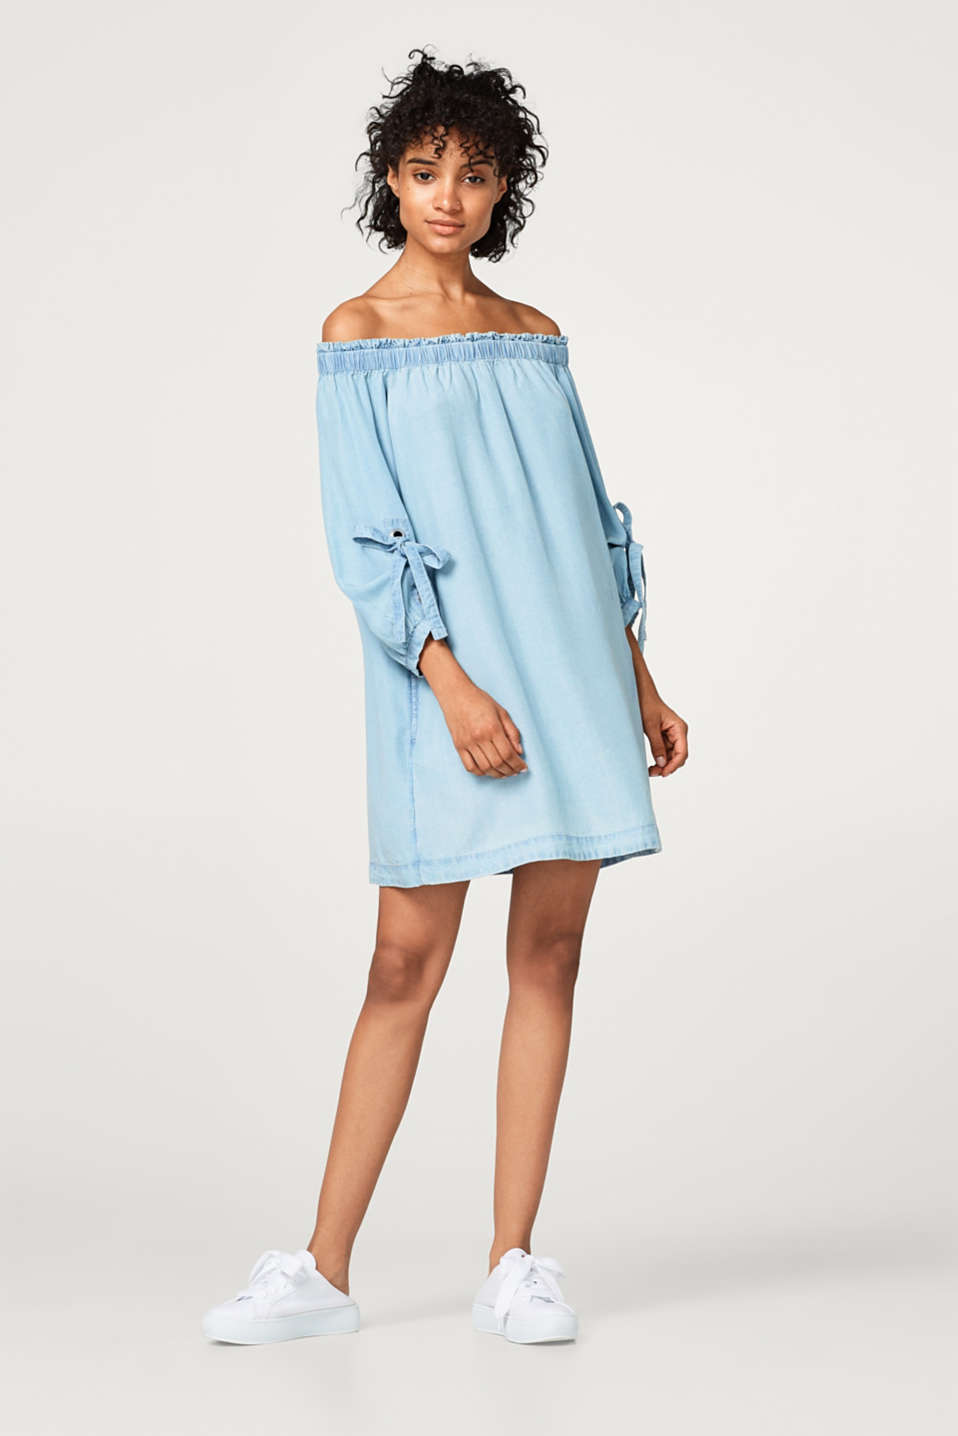 Off-Shoulder-Kleid im Denim-Look